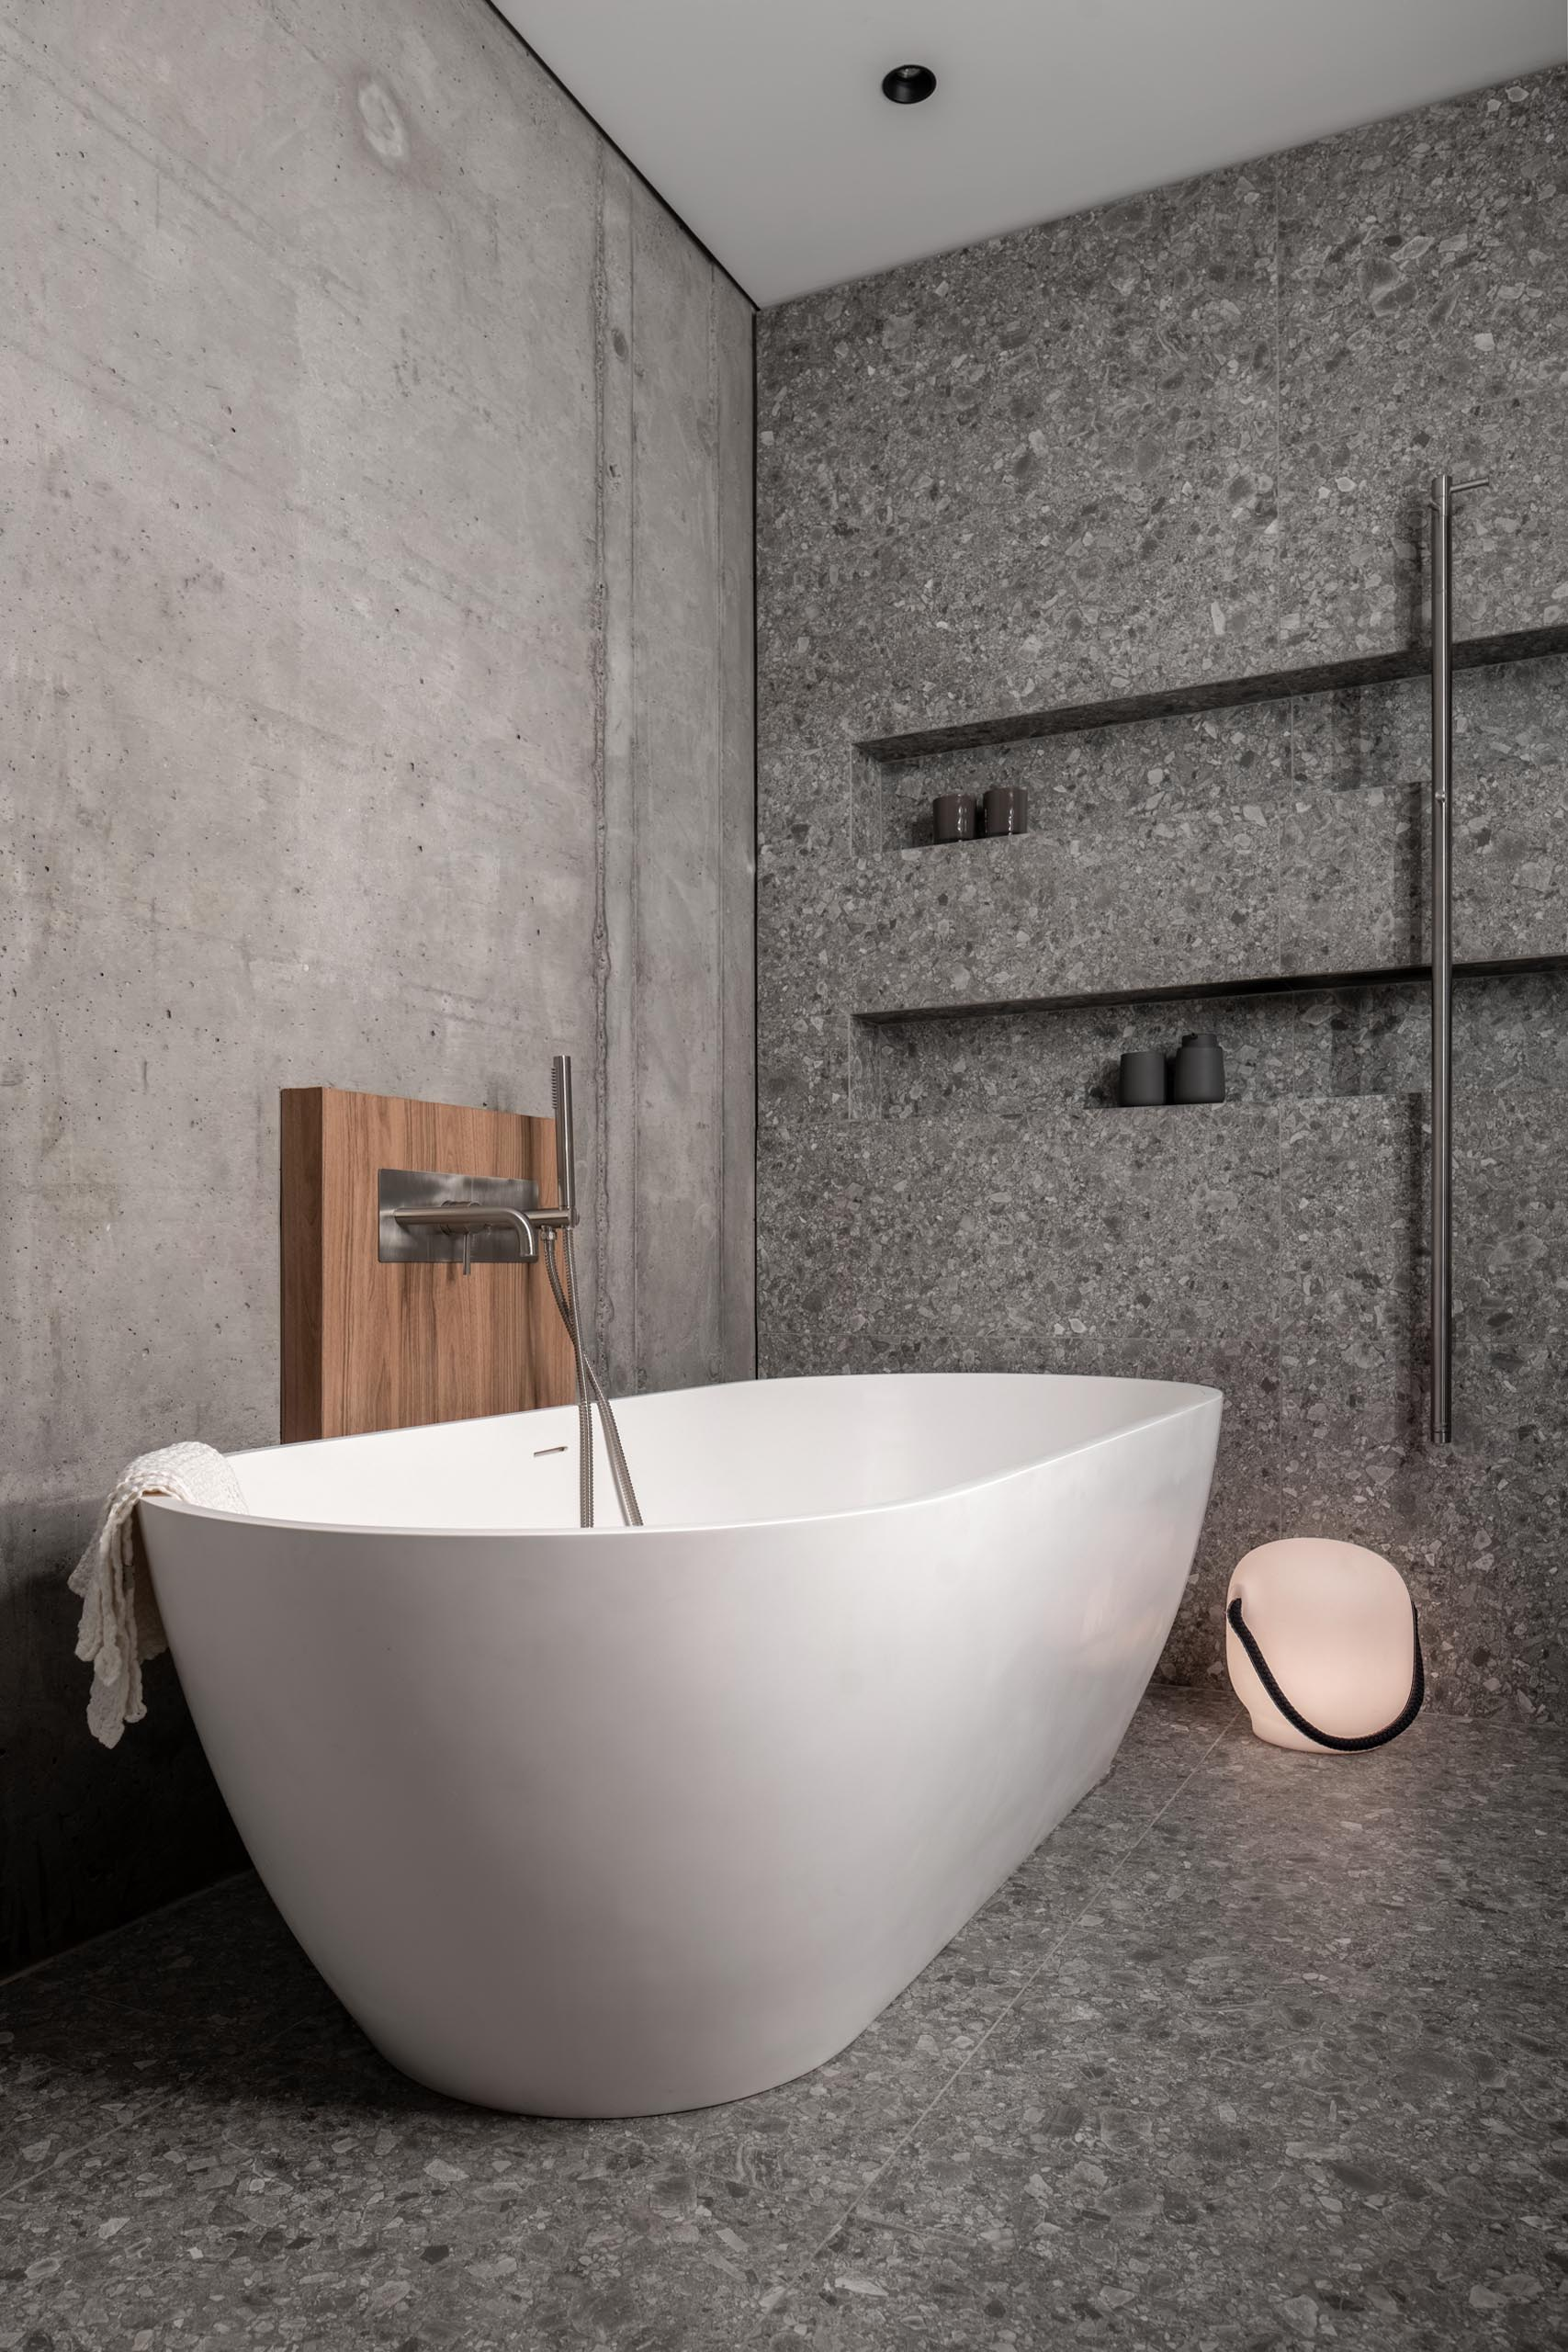 A modern grey bathroom with two shower niches, and a freestanding white bathtub.